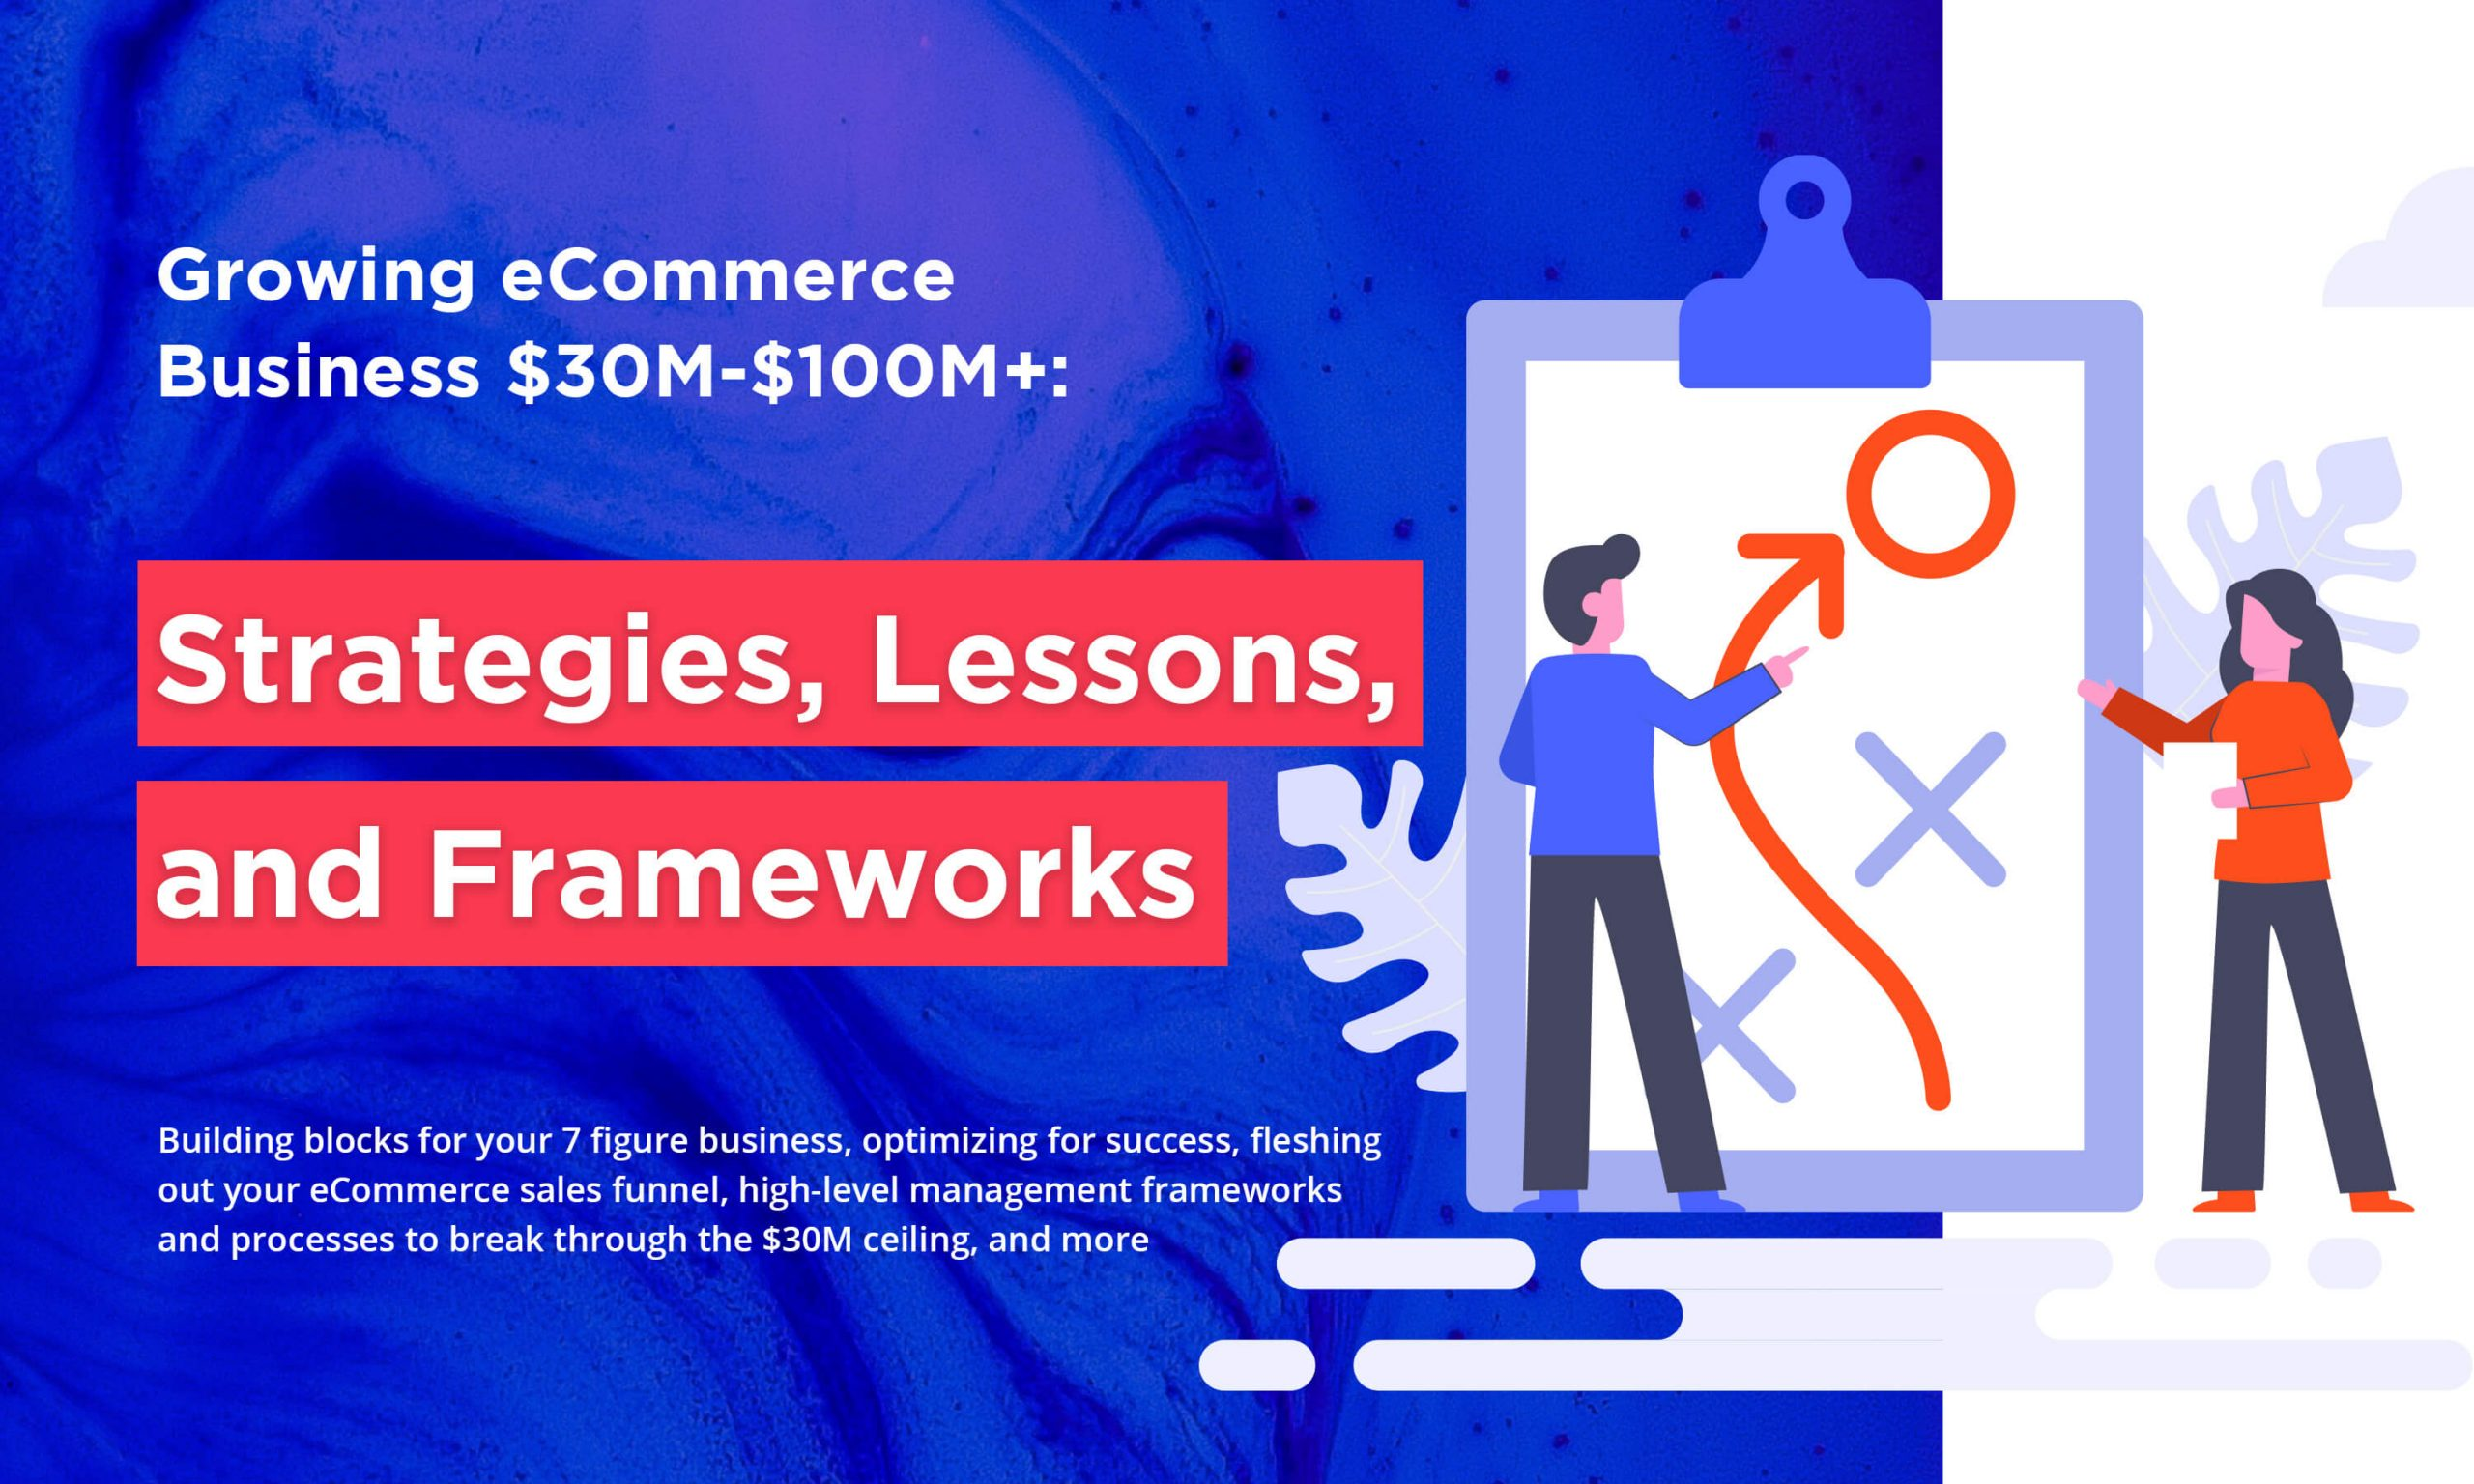 Growing eCommerce Business $30M-$100M+: Strategies, Lessons, and Frameworks